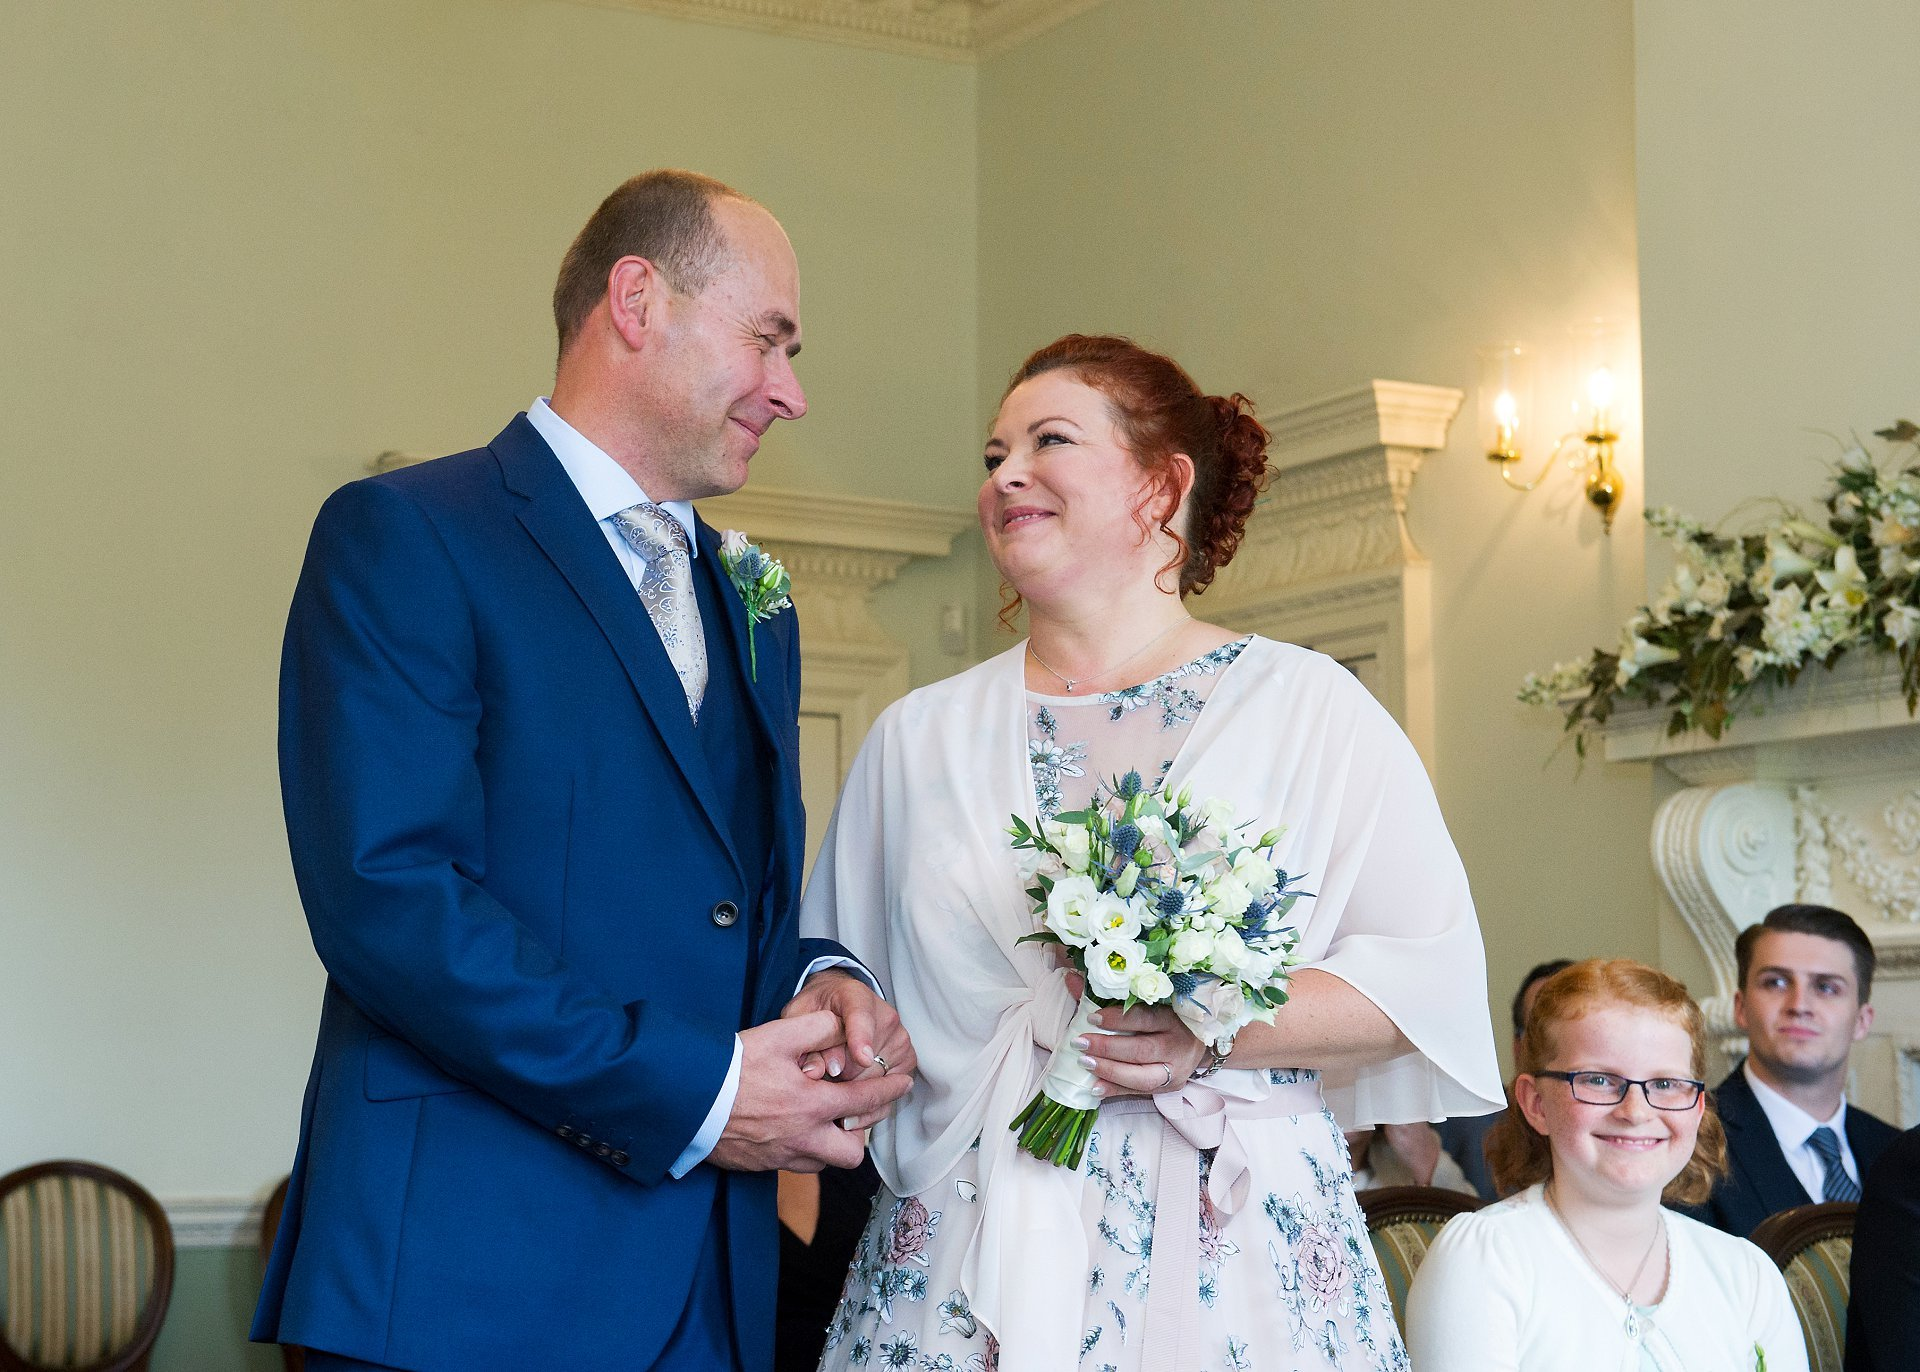 Park House Horsham wedding photographer Emma Duggan photographs couples at their civil ceremonies throughout West Sussex, here a bride and groom are announced as man and wife in the Horsham Register Office